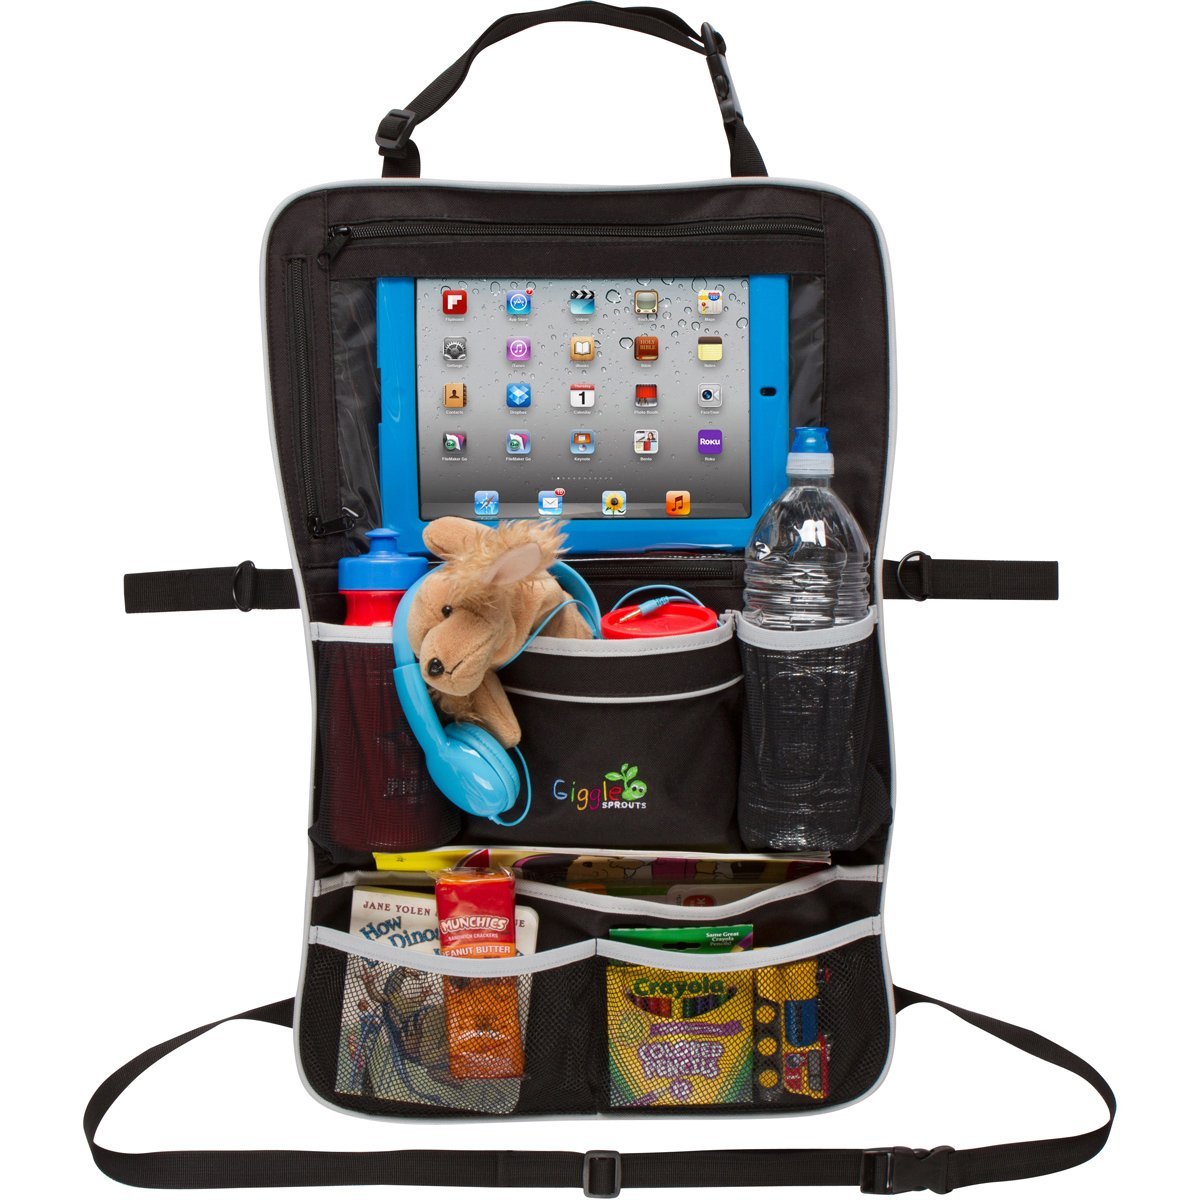 Giggle Sprouts Universal Backseat Car Organizer by Giggle Sprouts